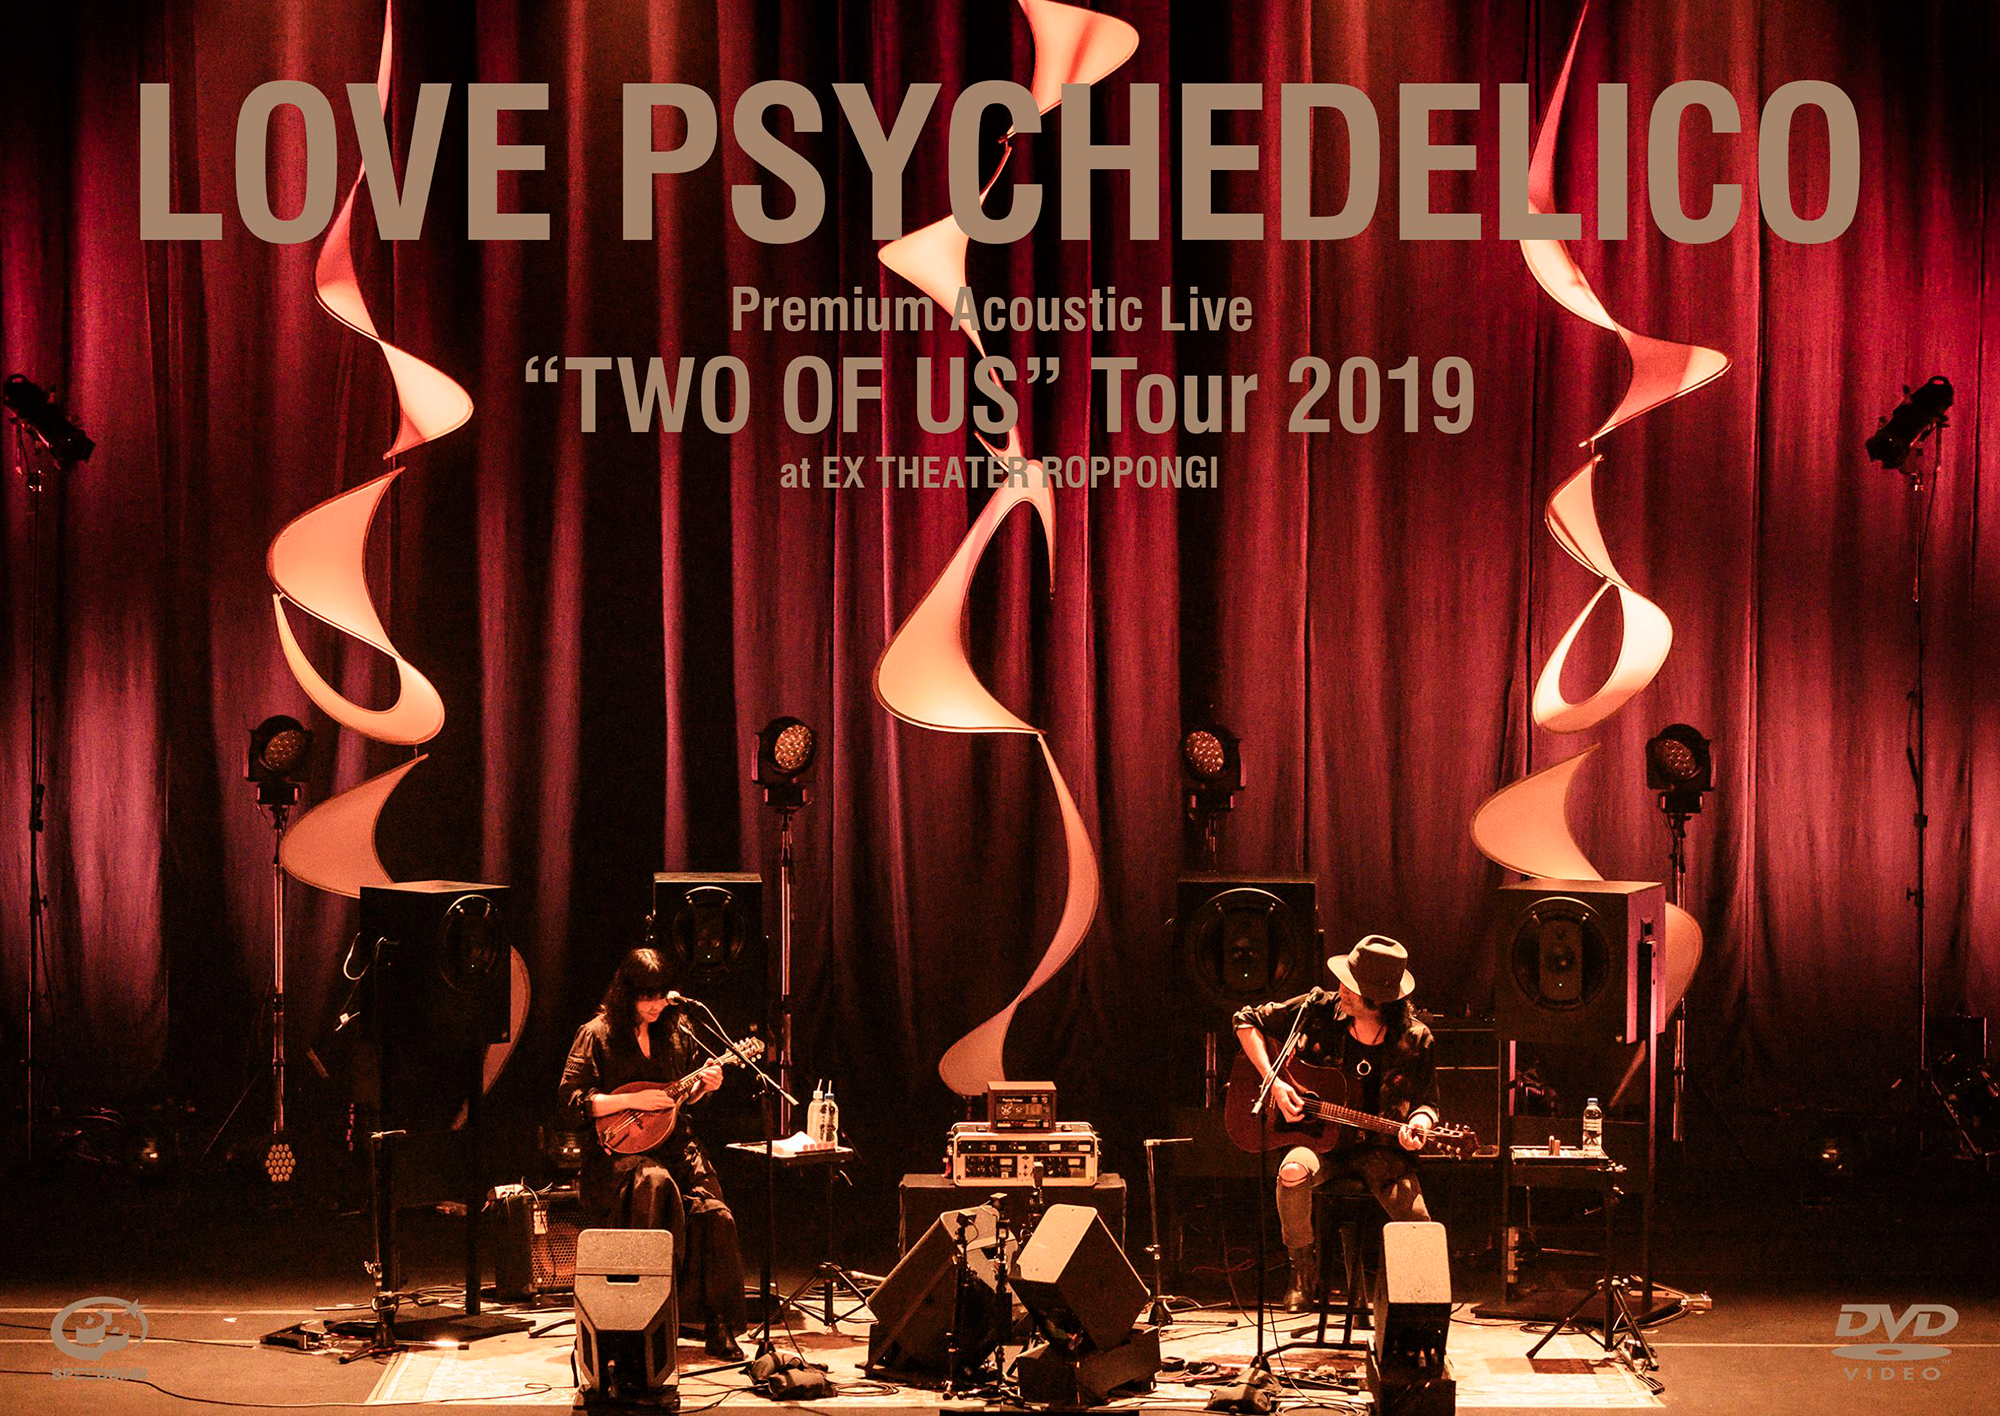 """Live Video(Blu-ray&DVD):Premium Acoustic Live """"TWO OF US"""" Tour 2019 at EX THEATER ROPPONNGI"""